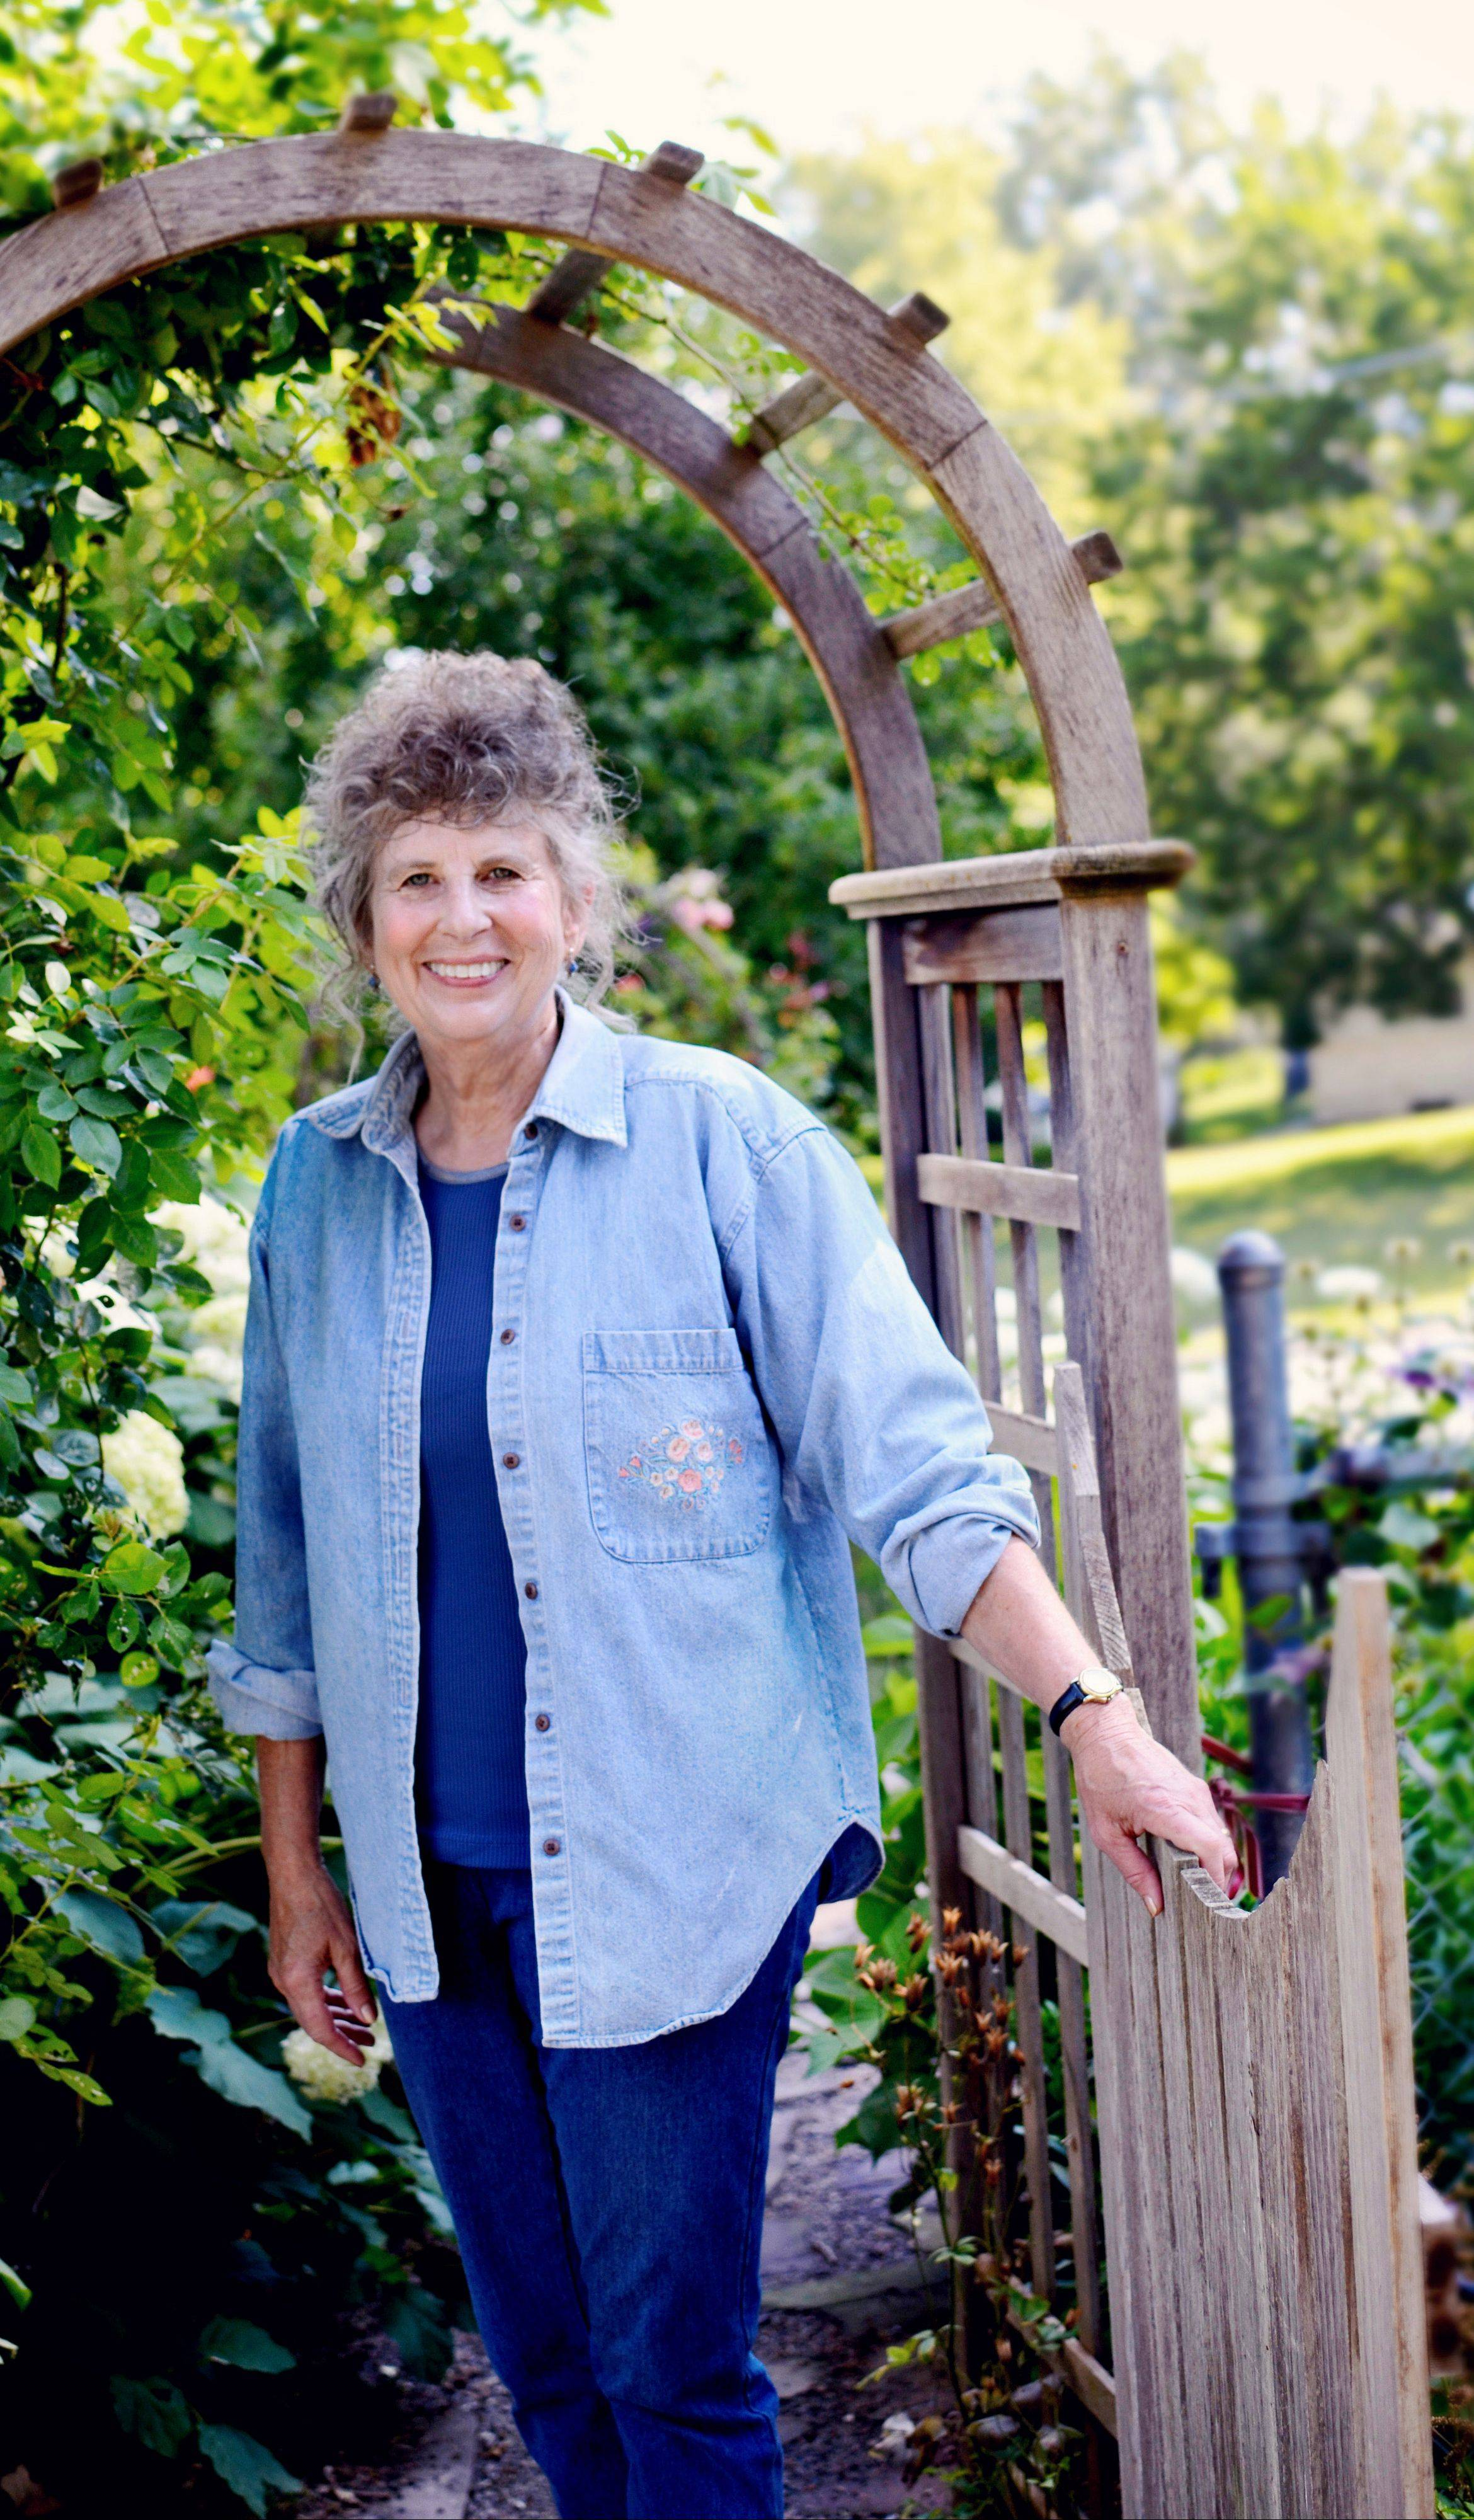 Jan Riggenbach has written about gardening in the Midwest for nearly 40 years.